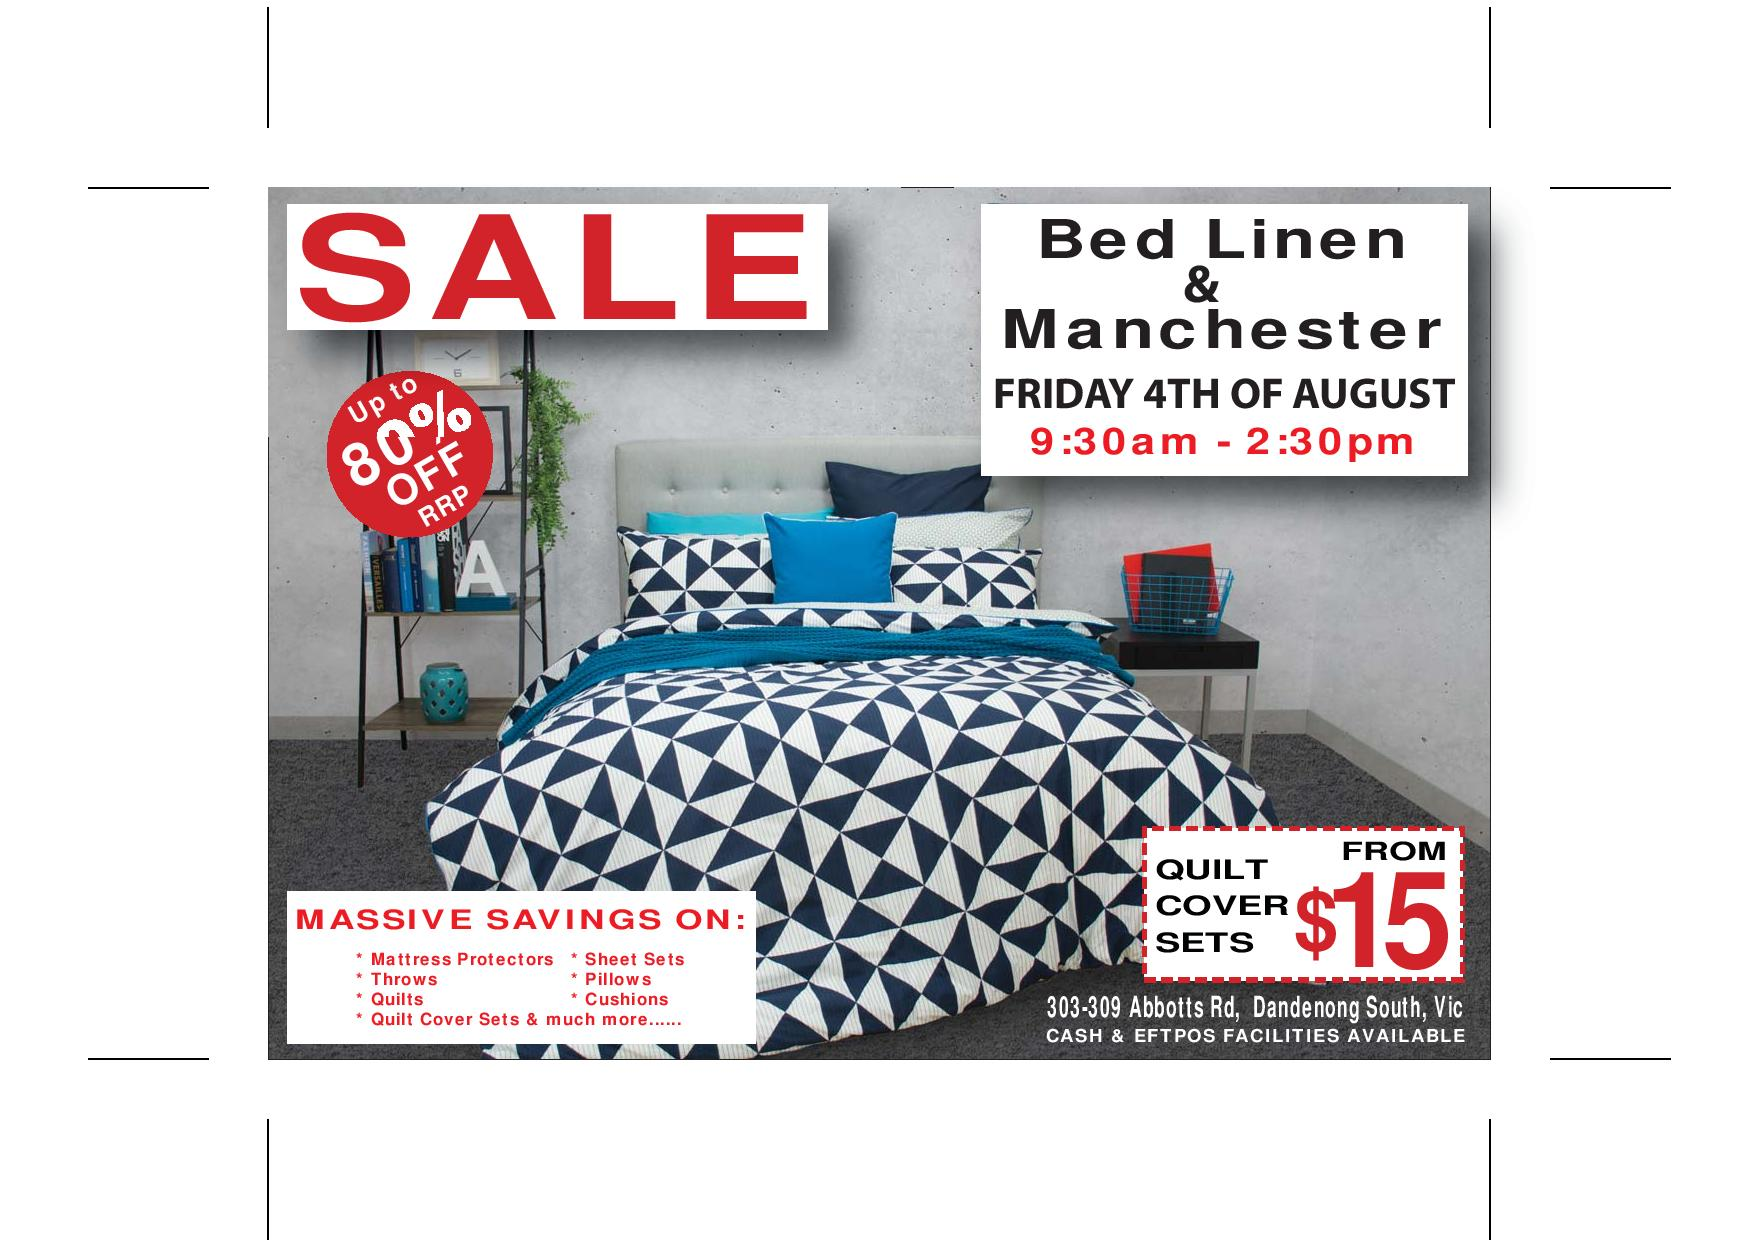 Bed Linen and Manchester Sale